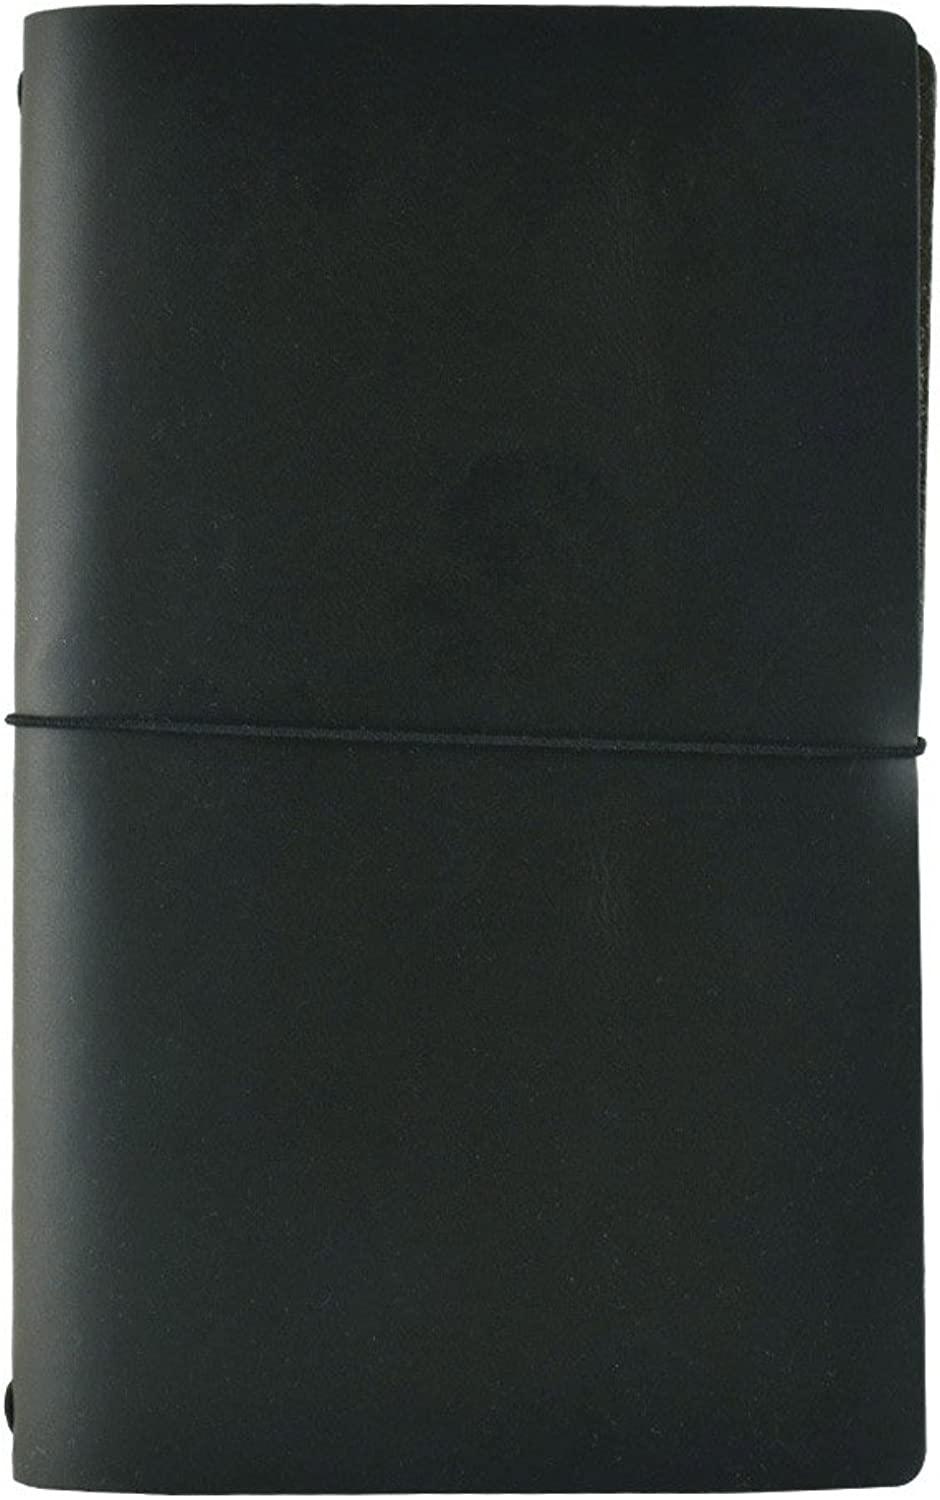 Expedition Leather Notebook by Rustico, 5.5 by 8.5 inches, Charcoal, Refillable, Made in the USA